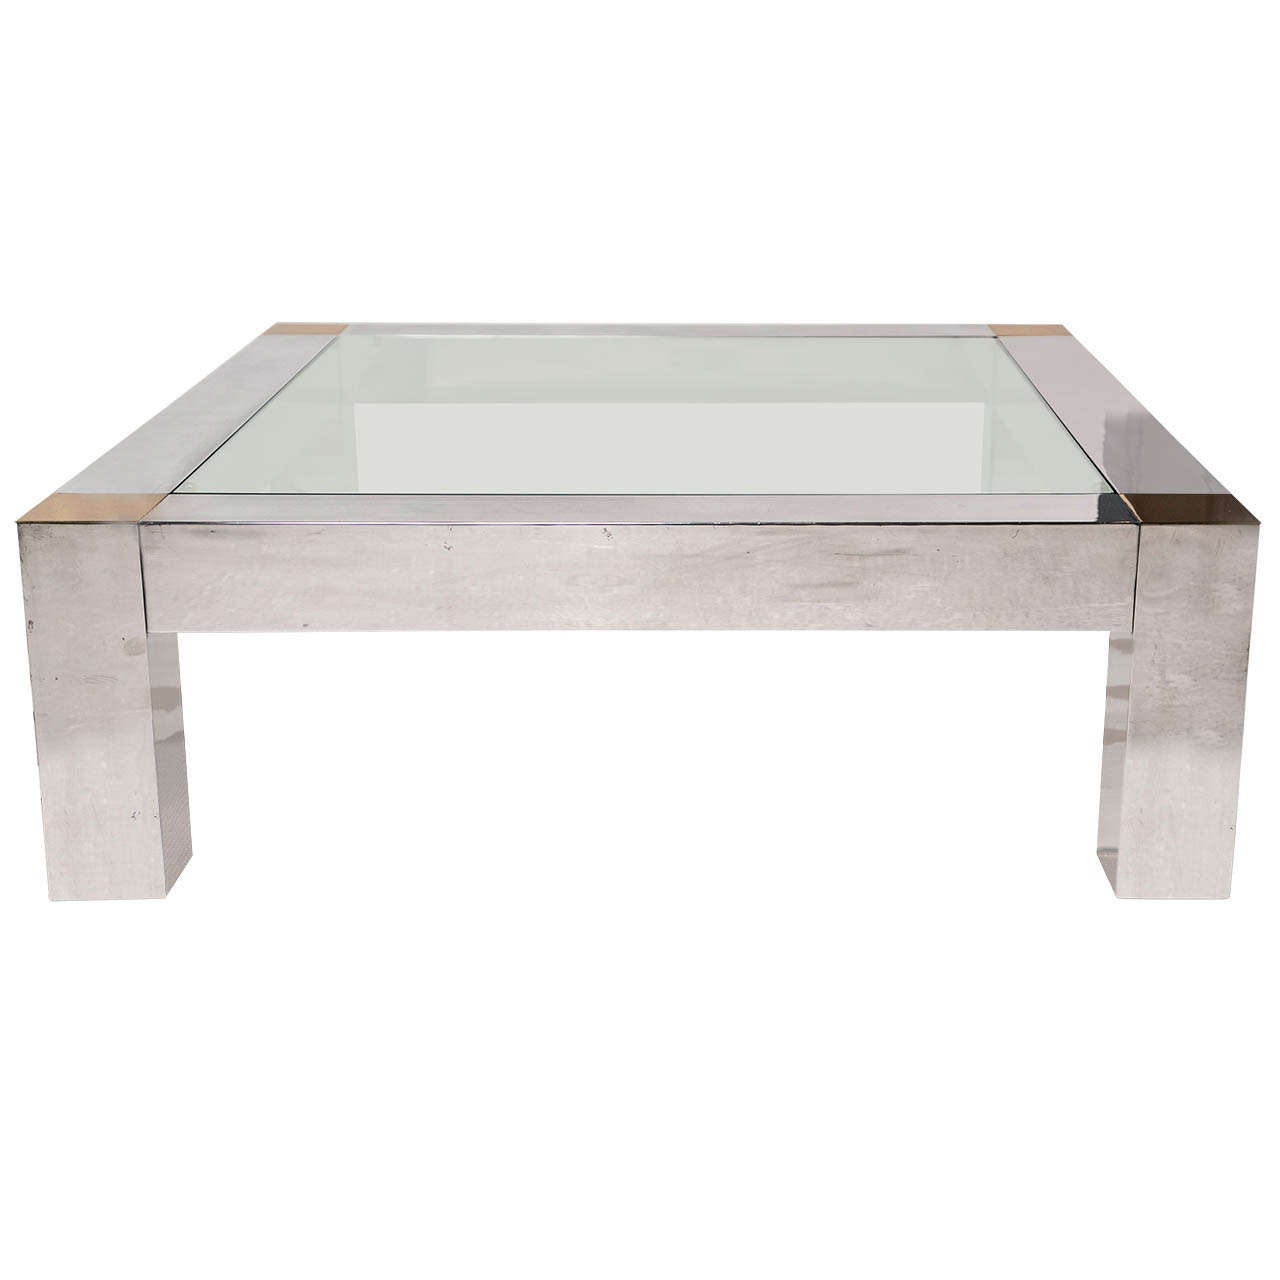 Vintage Polished Brass And Aluminum Chunky Coffee Table At 1stdibs